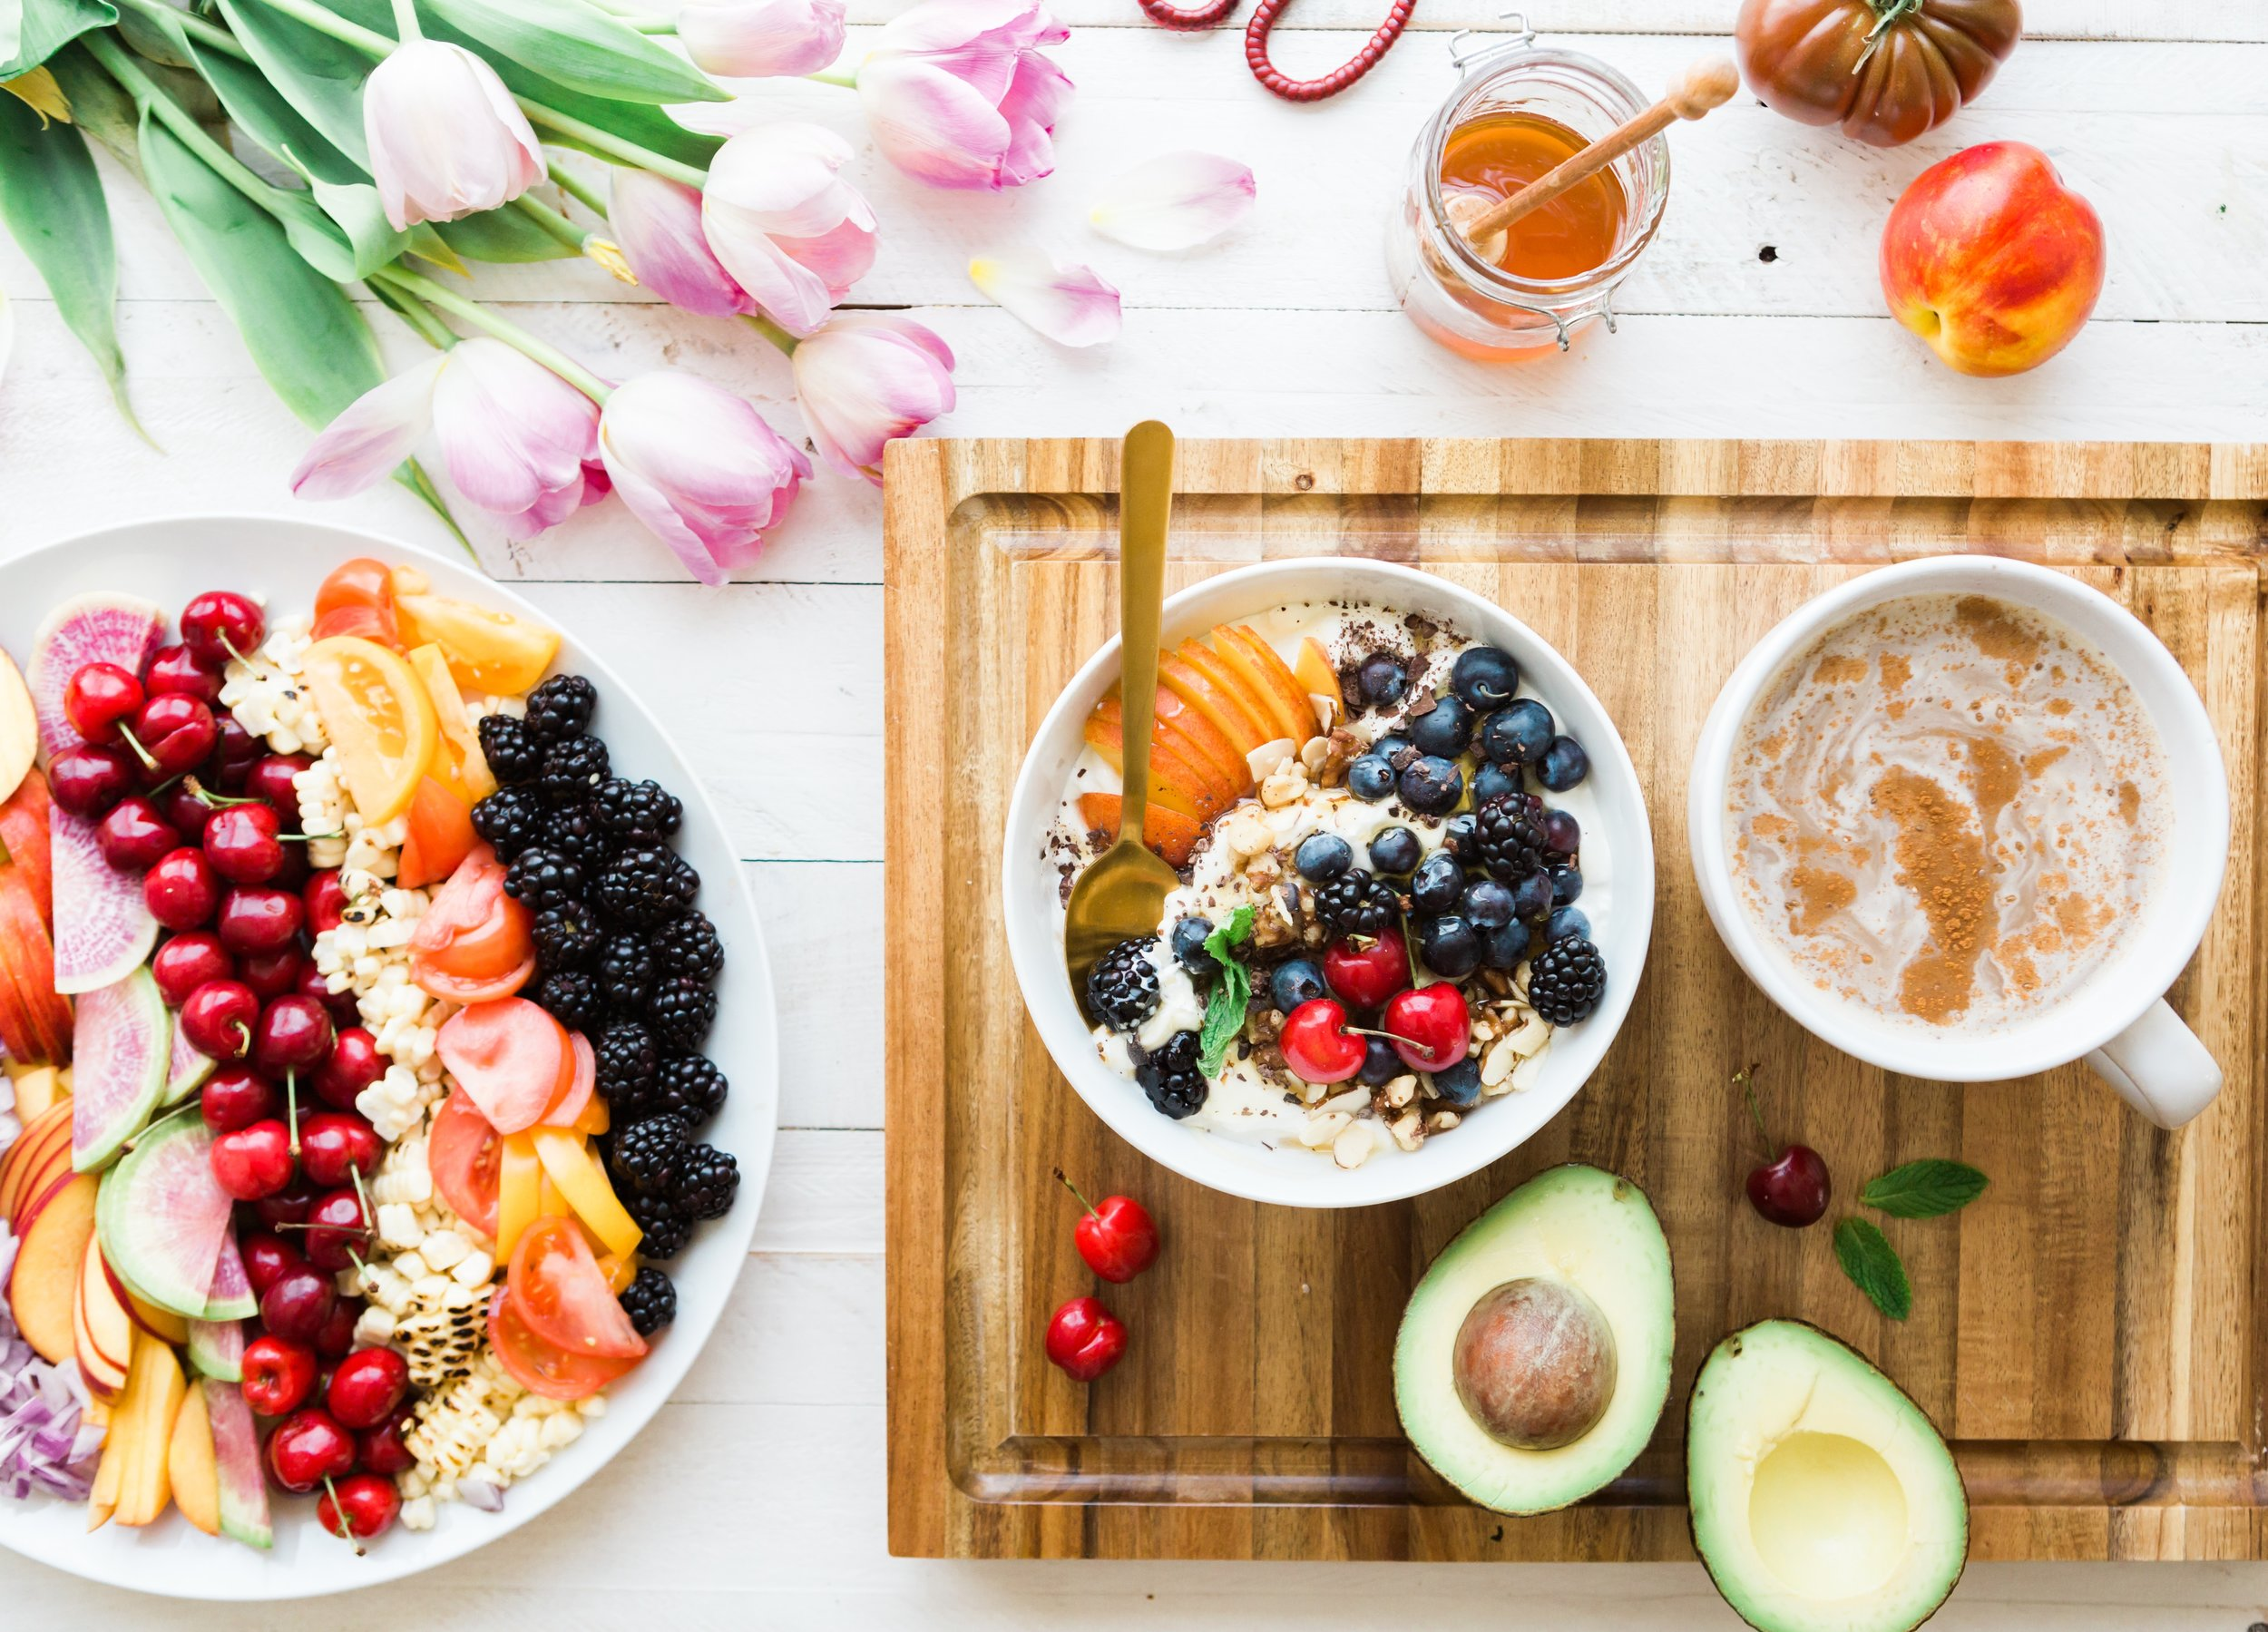 My Food Journey from Vegan to Omnivore by Completely Golden Tess Palma-Martinez breakfast platter avocado honey and fruit.jpg